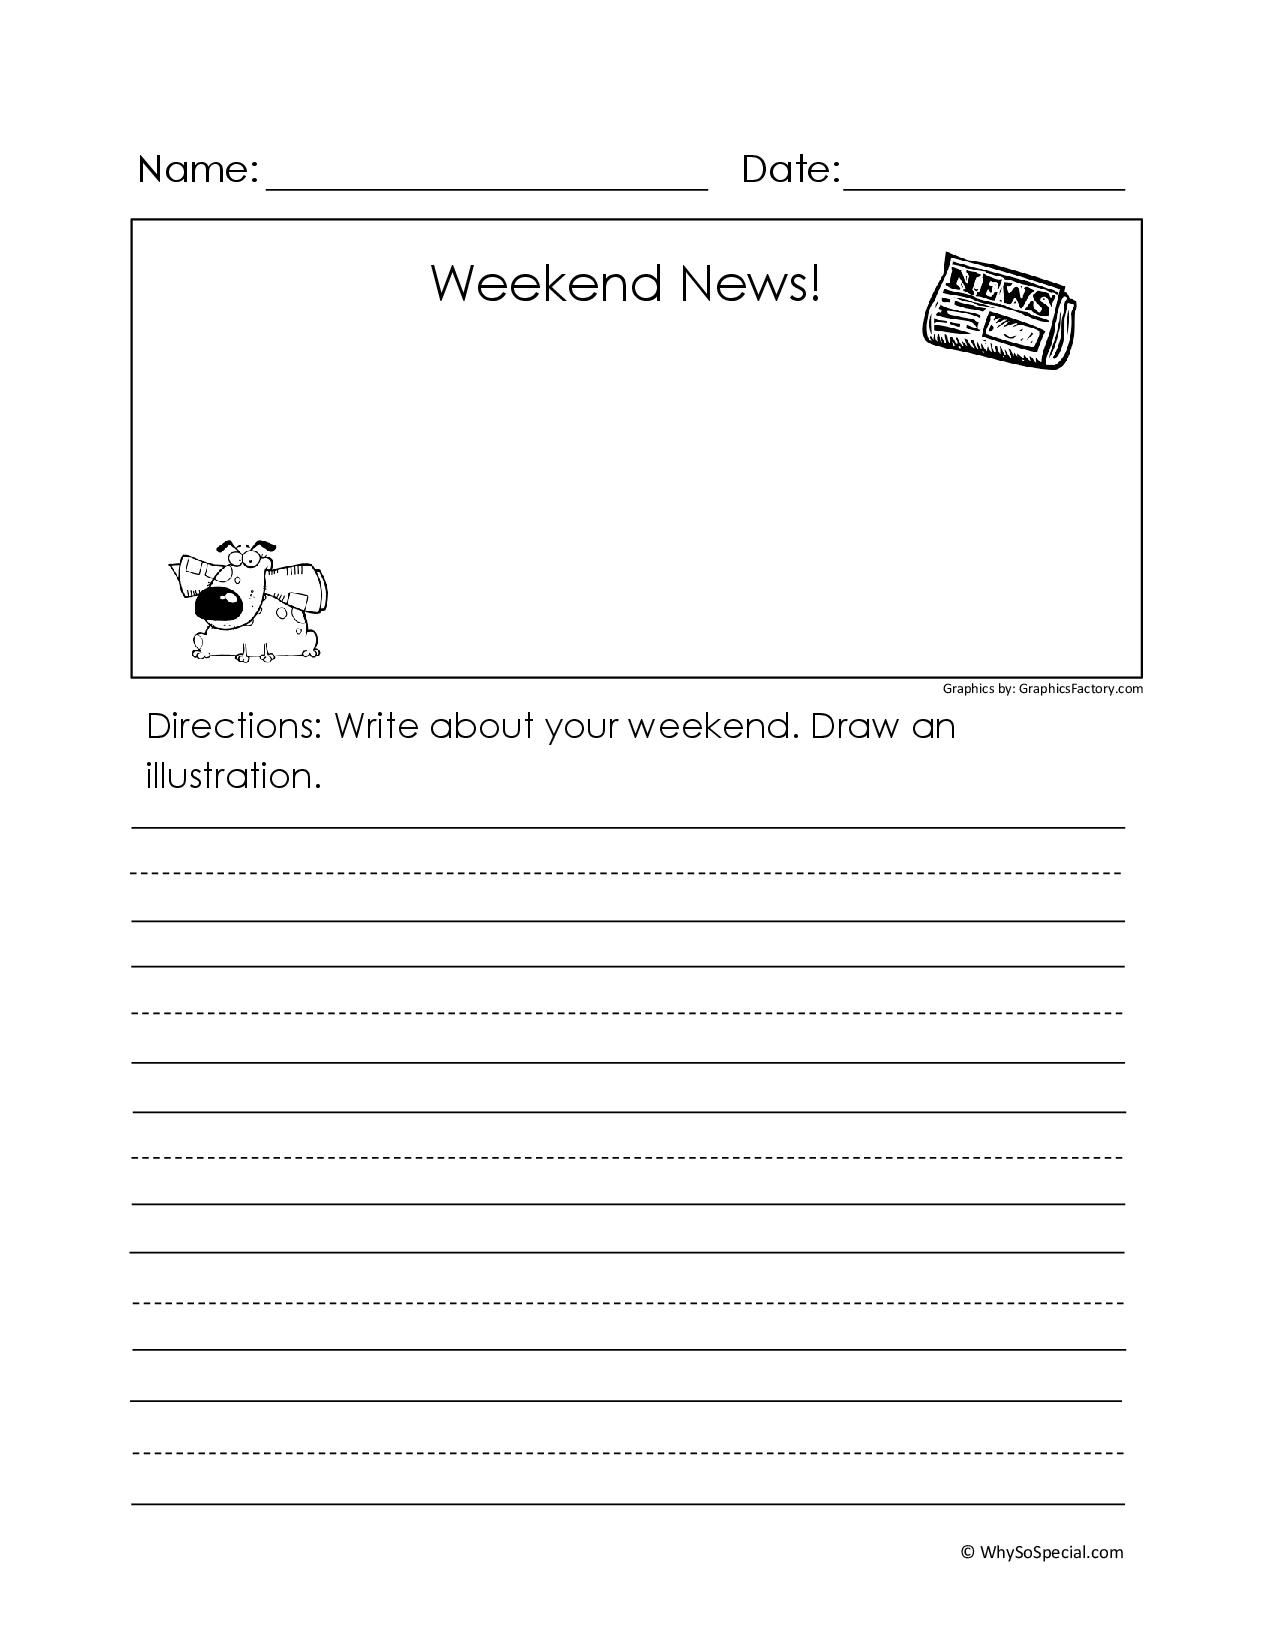 Start Each Monday With Writing Weekend News I Always Give The Writing Prompt This Weekend I